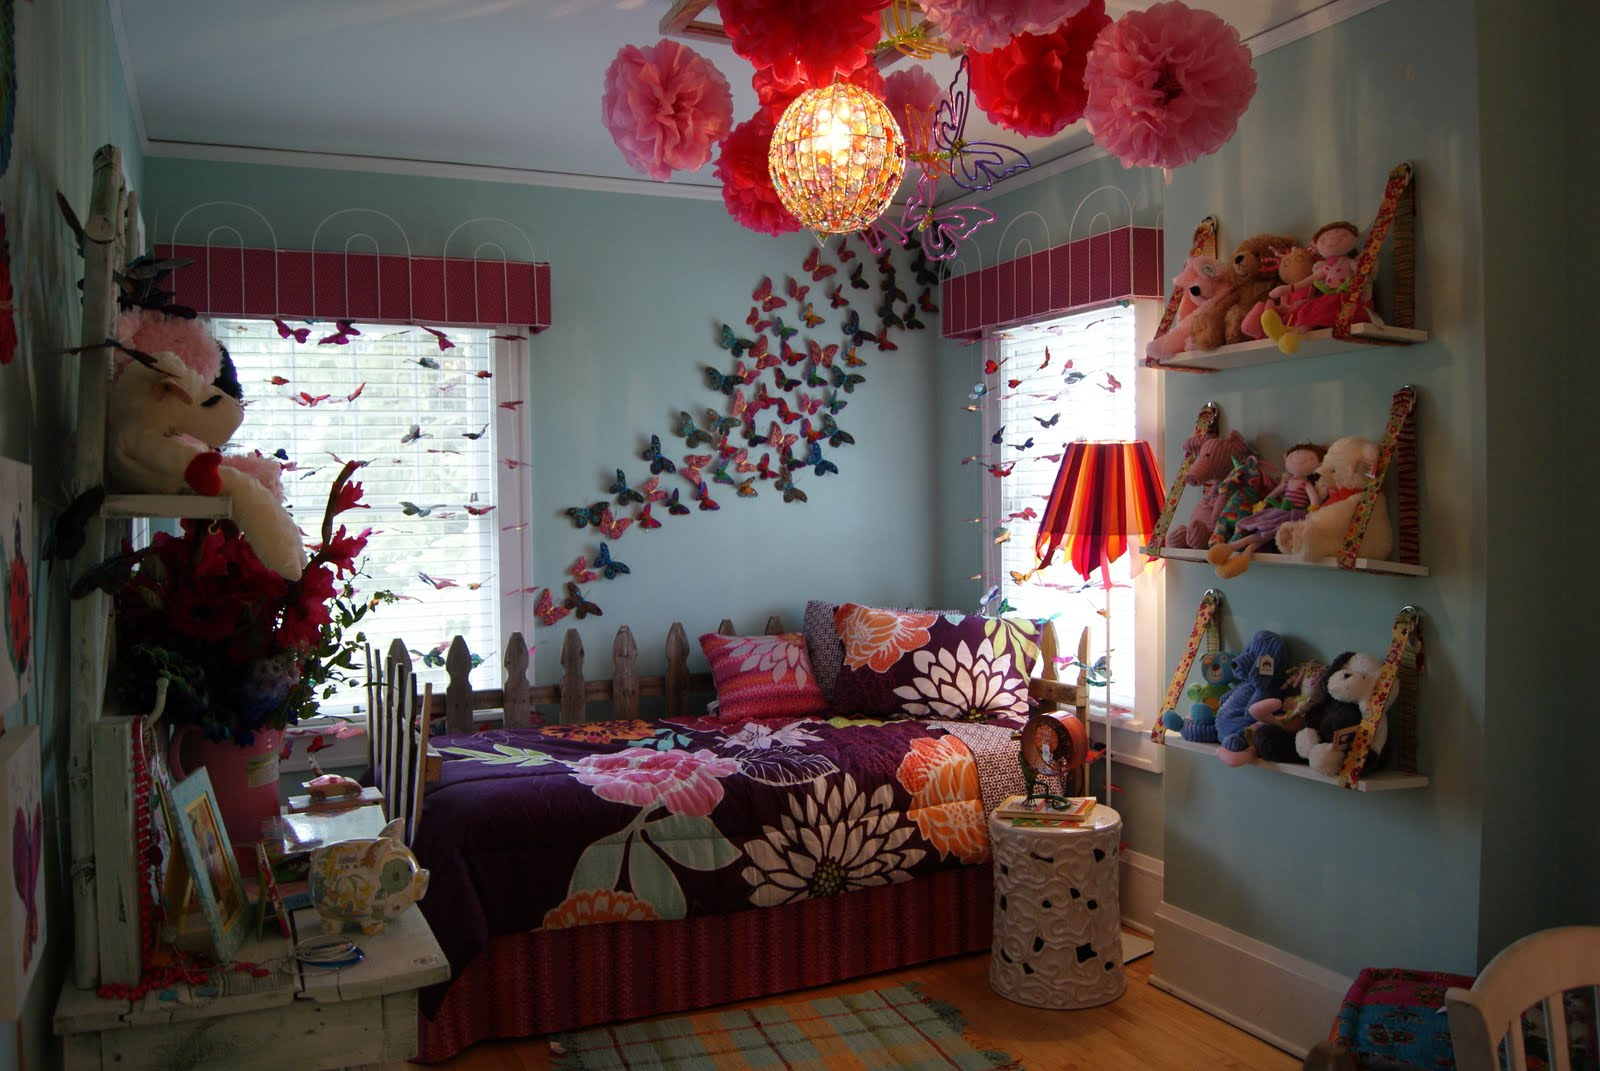 Butterfly Bedroom Themes Butterfly Themed Bedroom In Budget Interior Designing